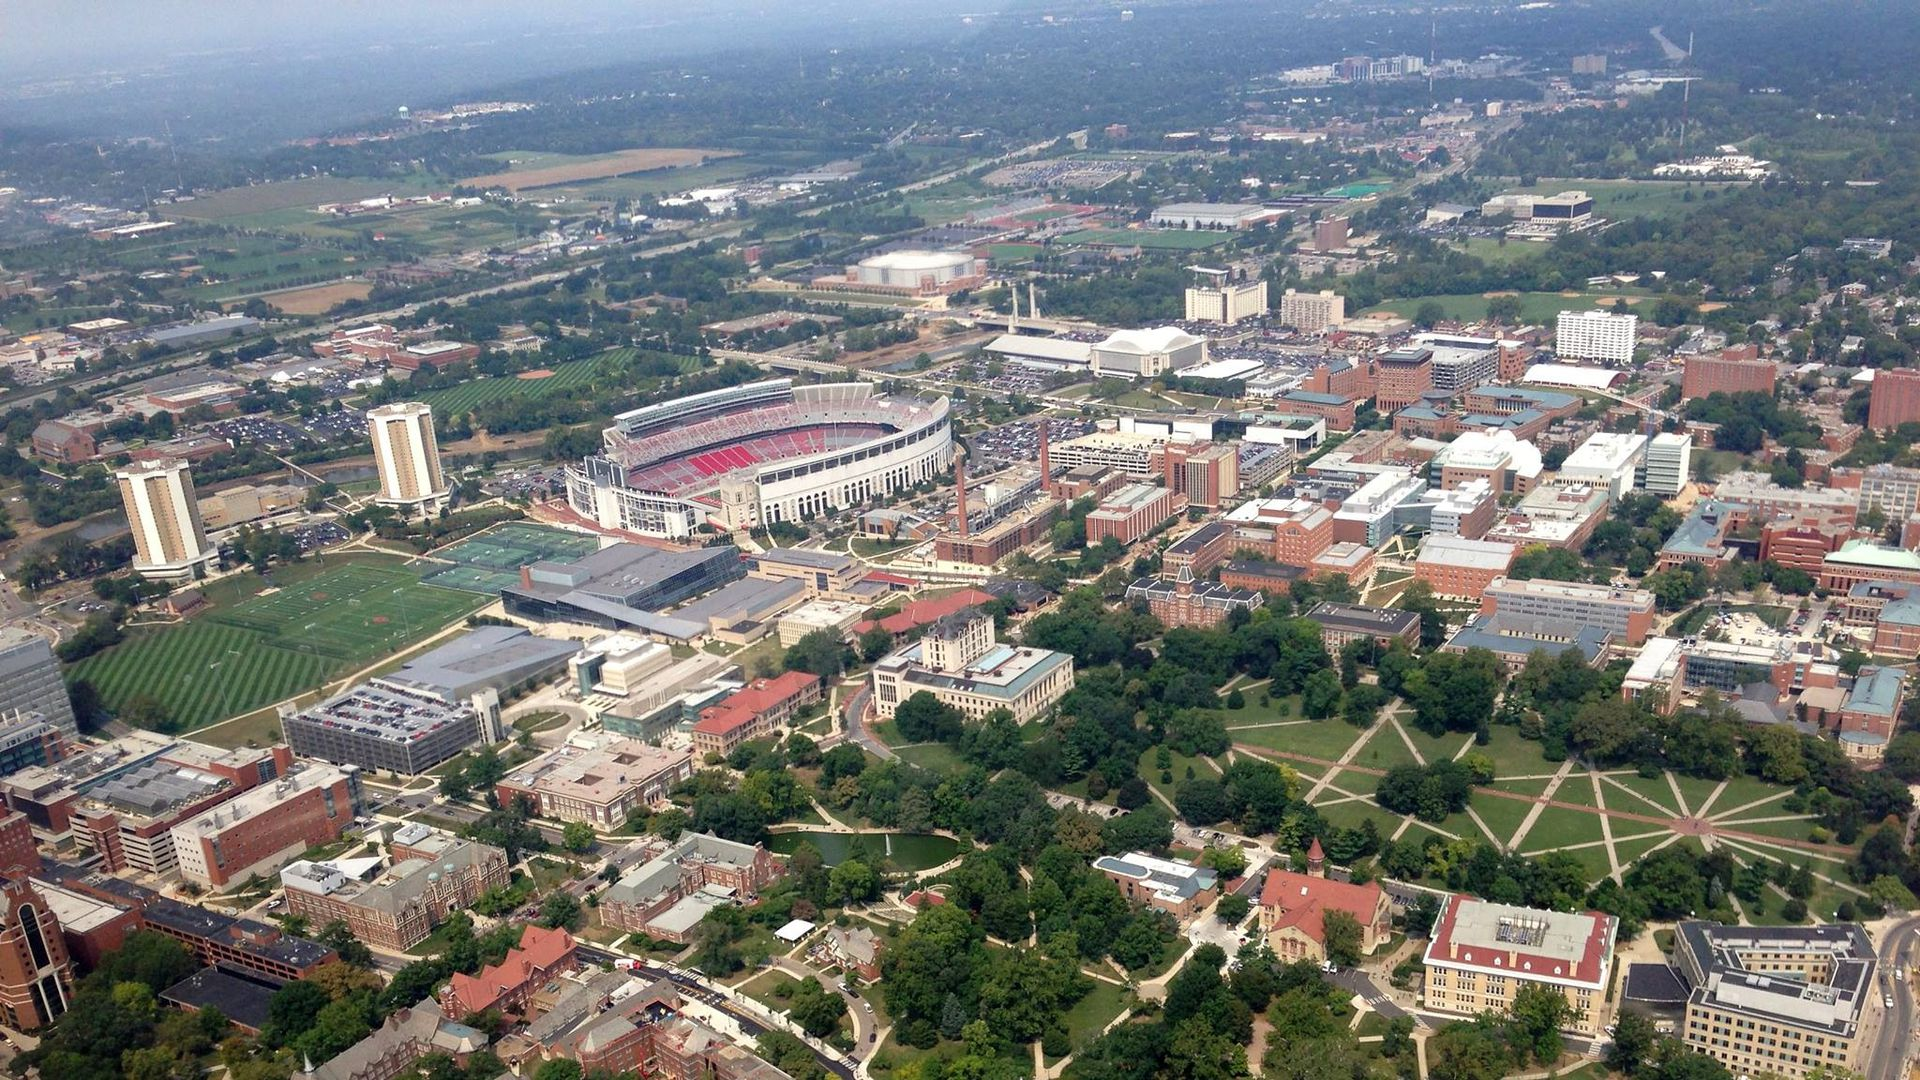 Ohio State University campus, aerial view.